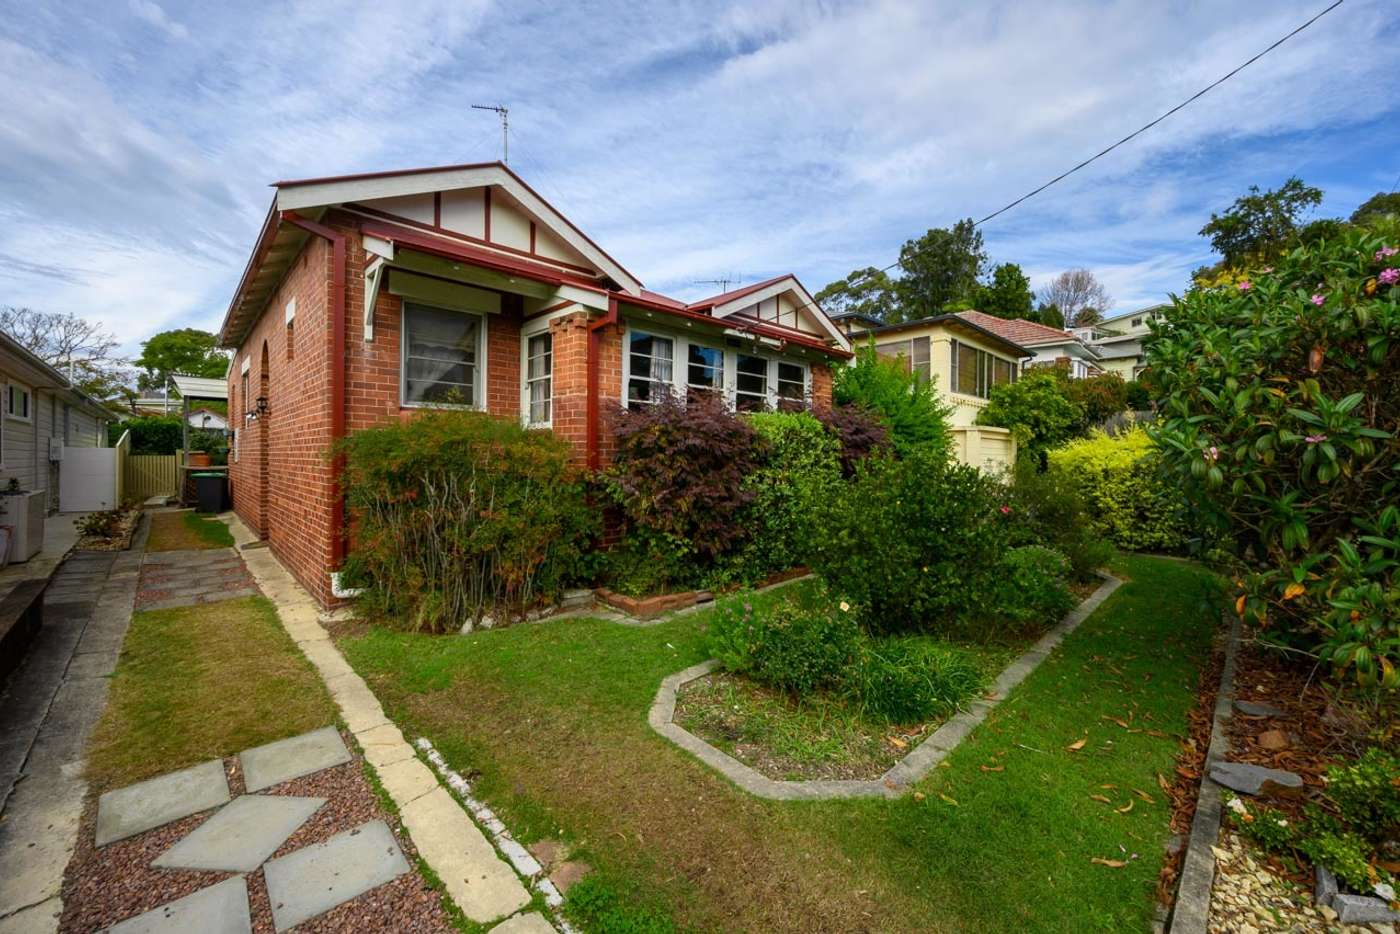 Main view of Homely house listing, 221 St James Road, New Lambton NSW 2305